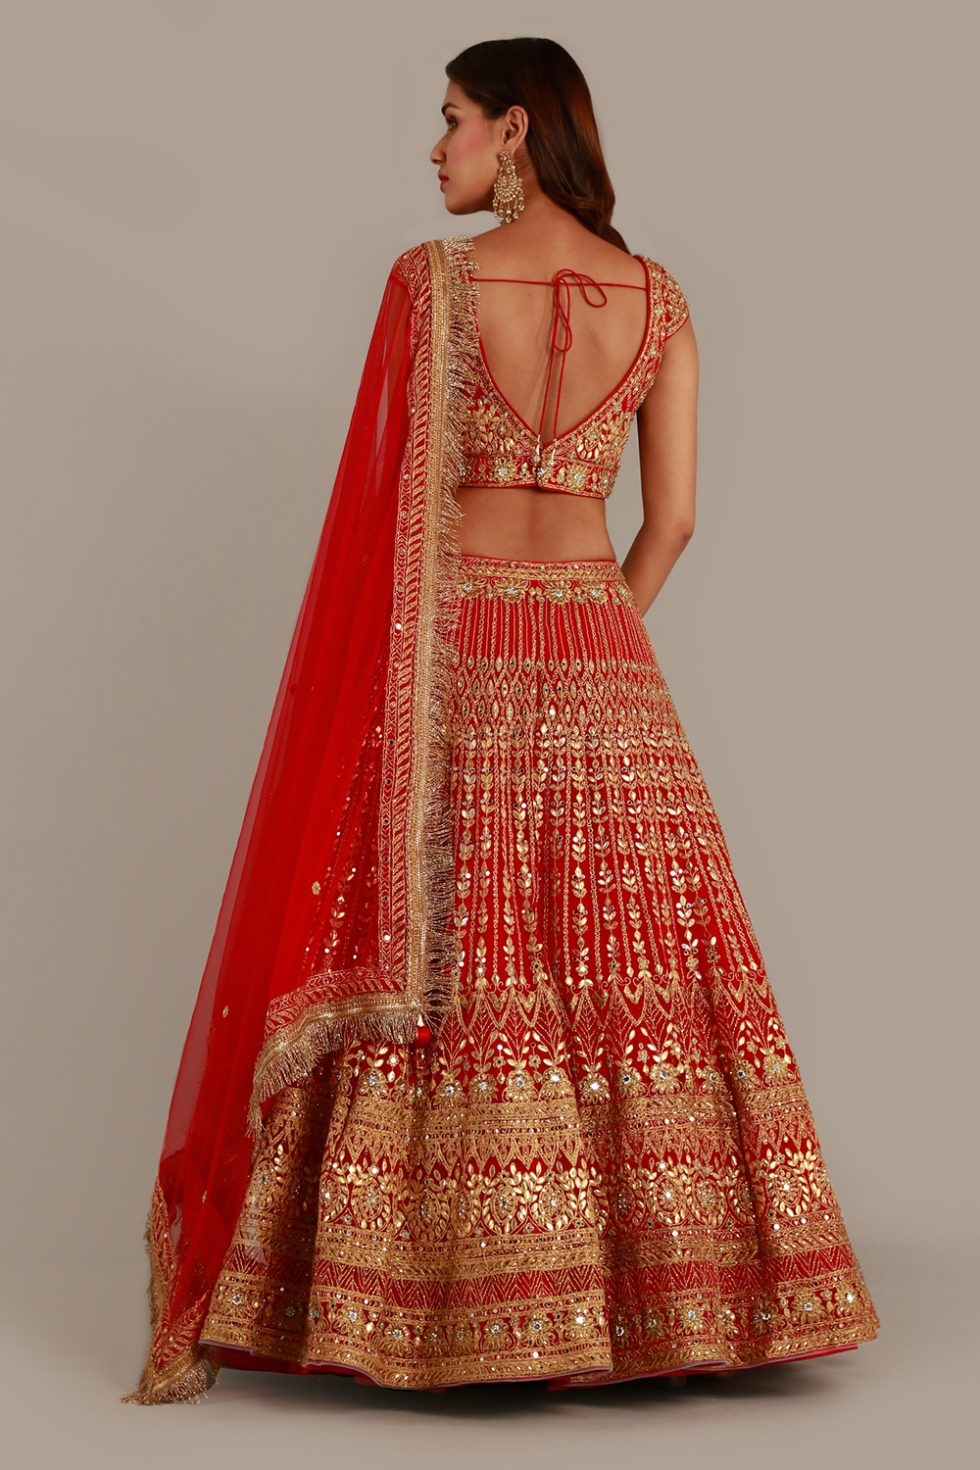 Bright red lehenga set with gota and abla work and matching dupatta with gold border and fringe detail